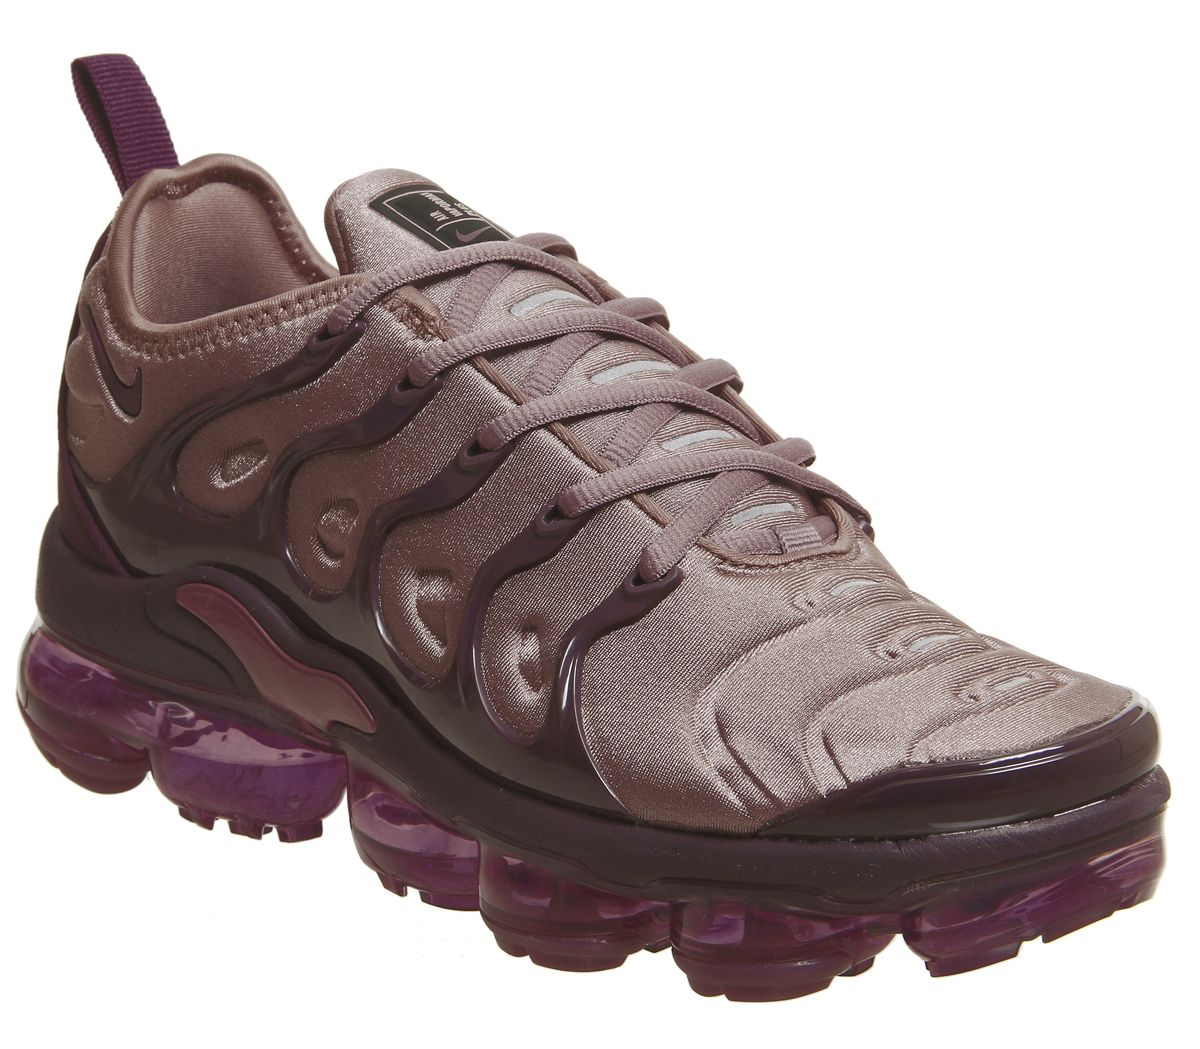 competitive price 23b5b 2225a Air Vapormax Plus Trainers